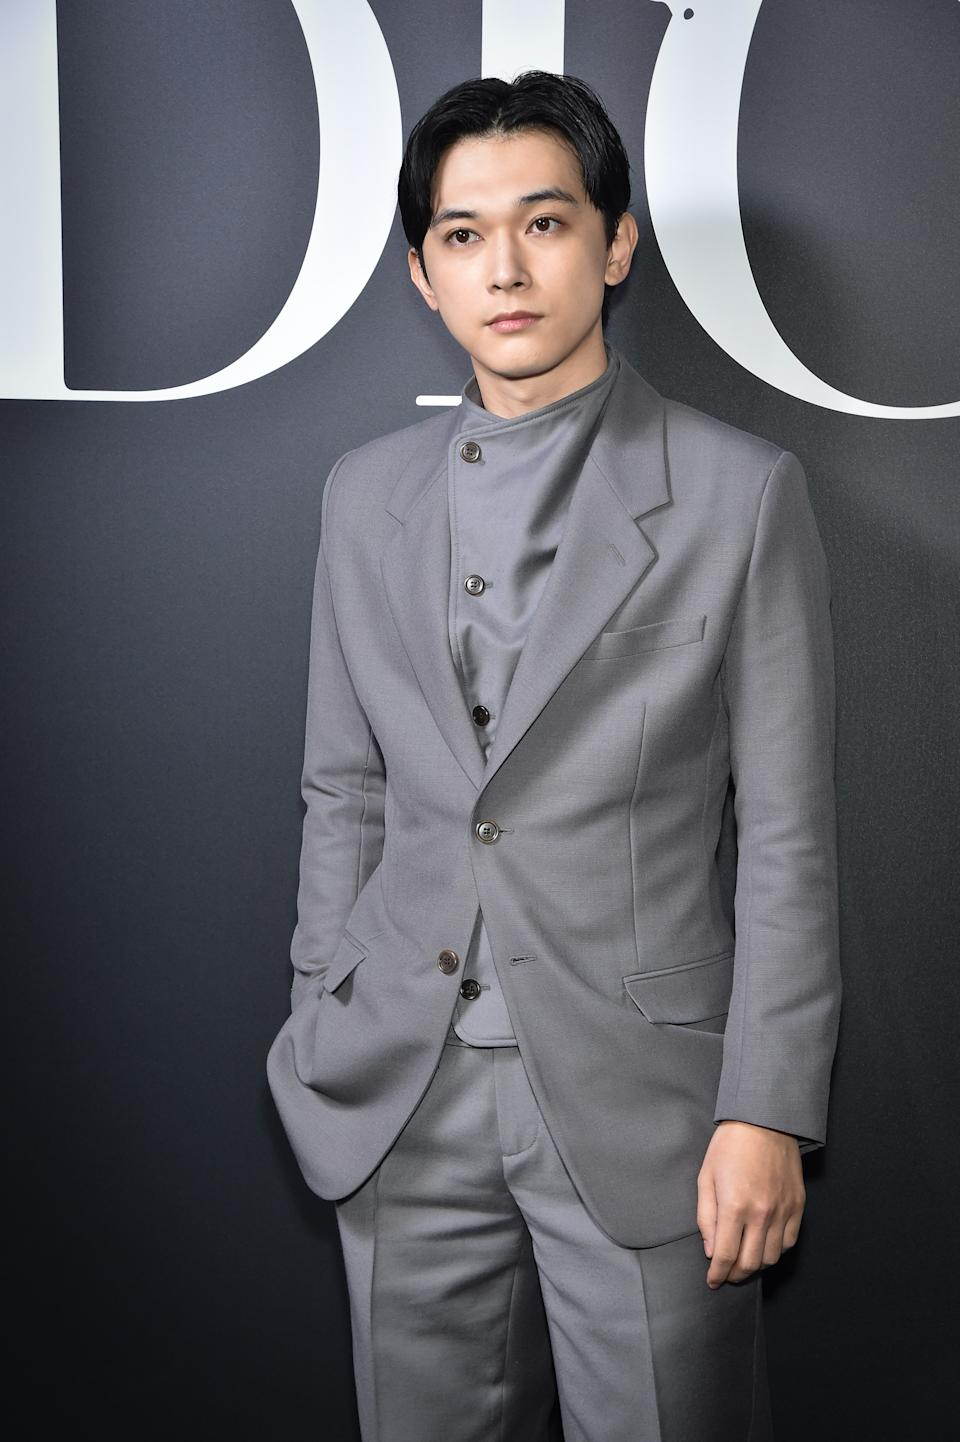 PARIS, FRANCE - JANUARY 17:  Ryo Yoshizawa attends the Dior Homme Menswear Fall/Winter 2020-2021 show as part of Paris Fashion Week on January 17, 2020 in Paris, France. (Photo by Stephane Cardinale - Corbis/Corbis via Getty Images)